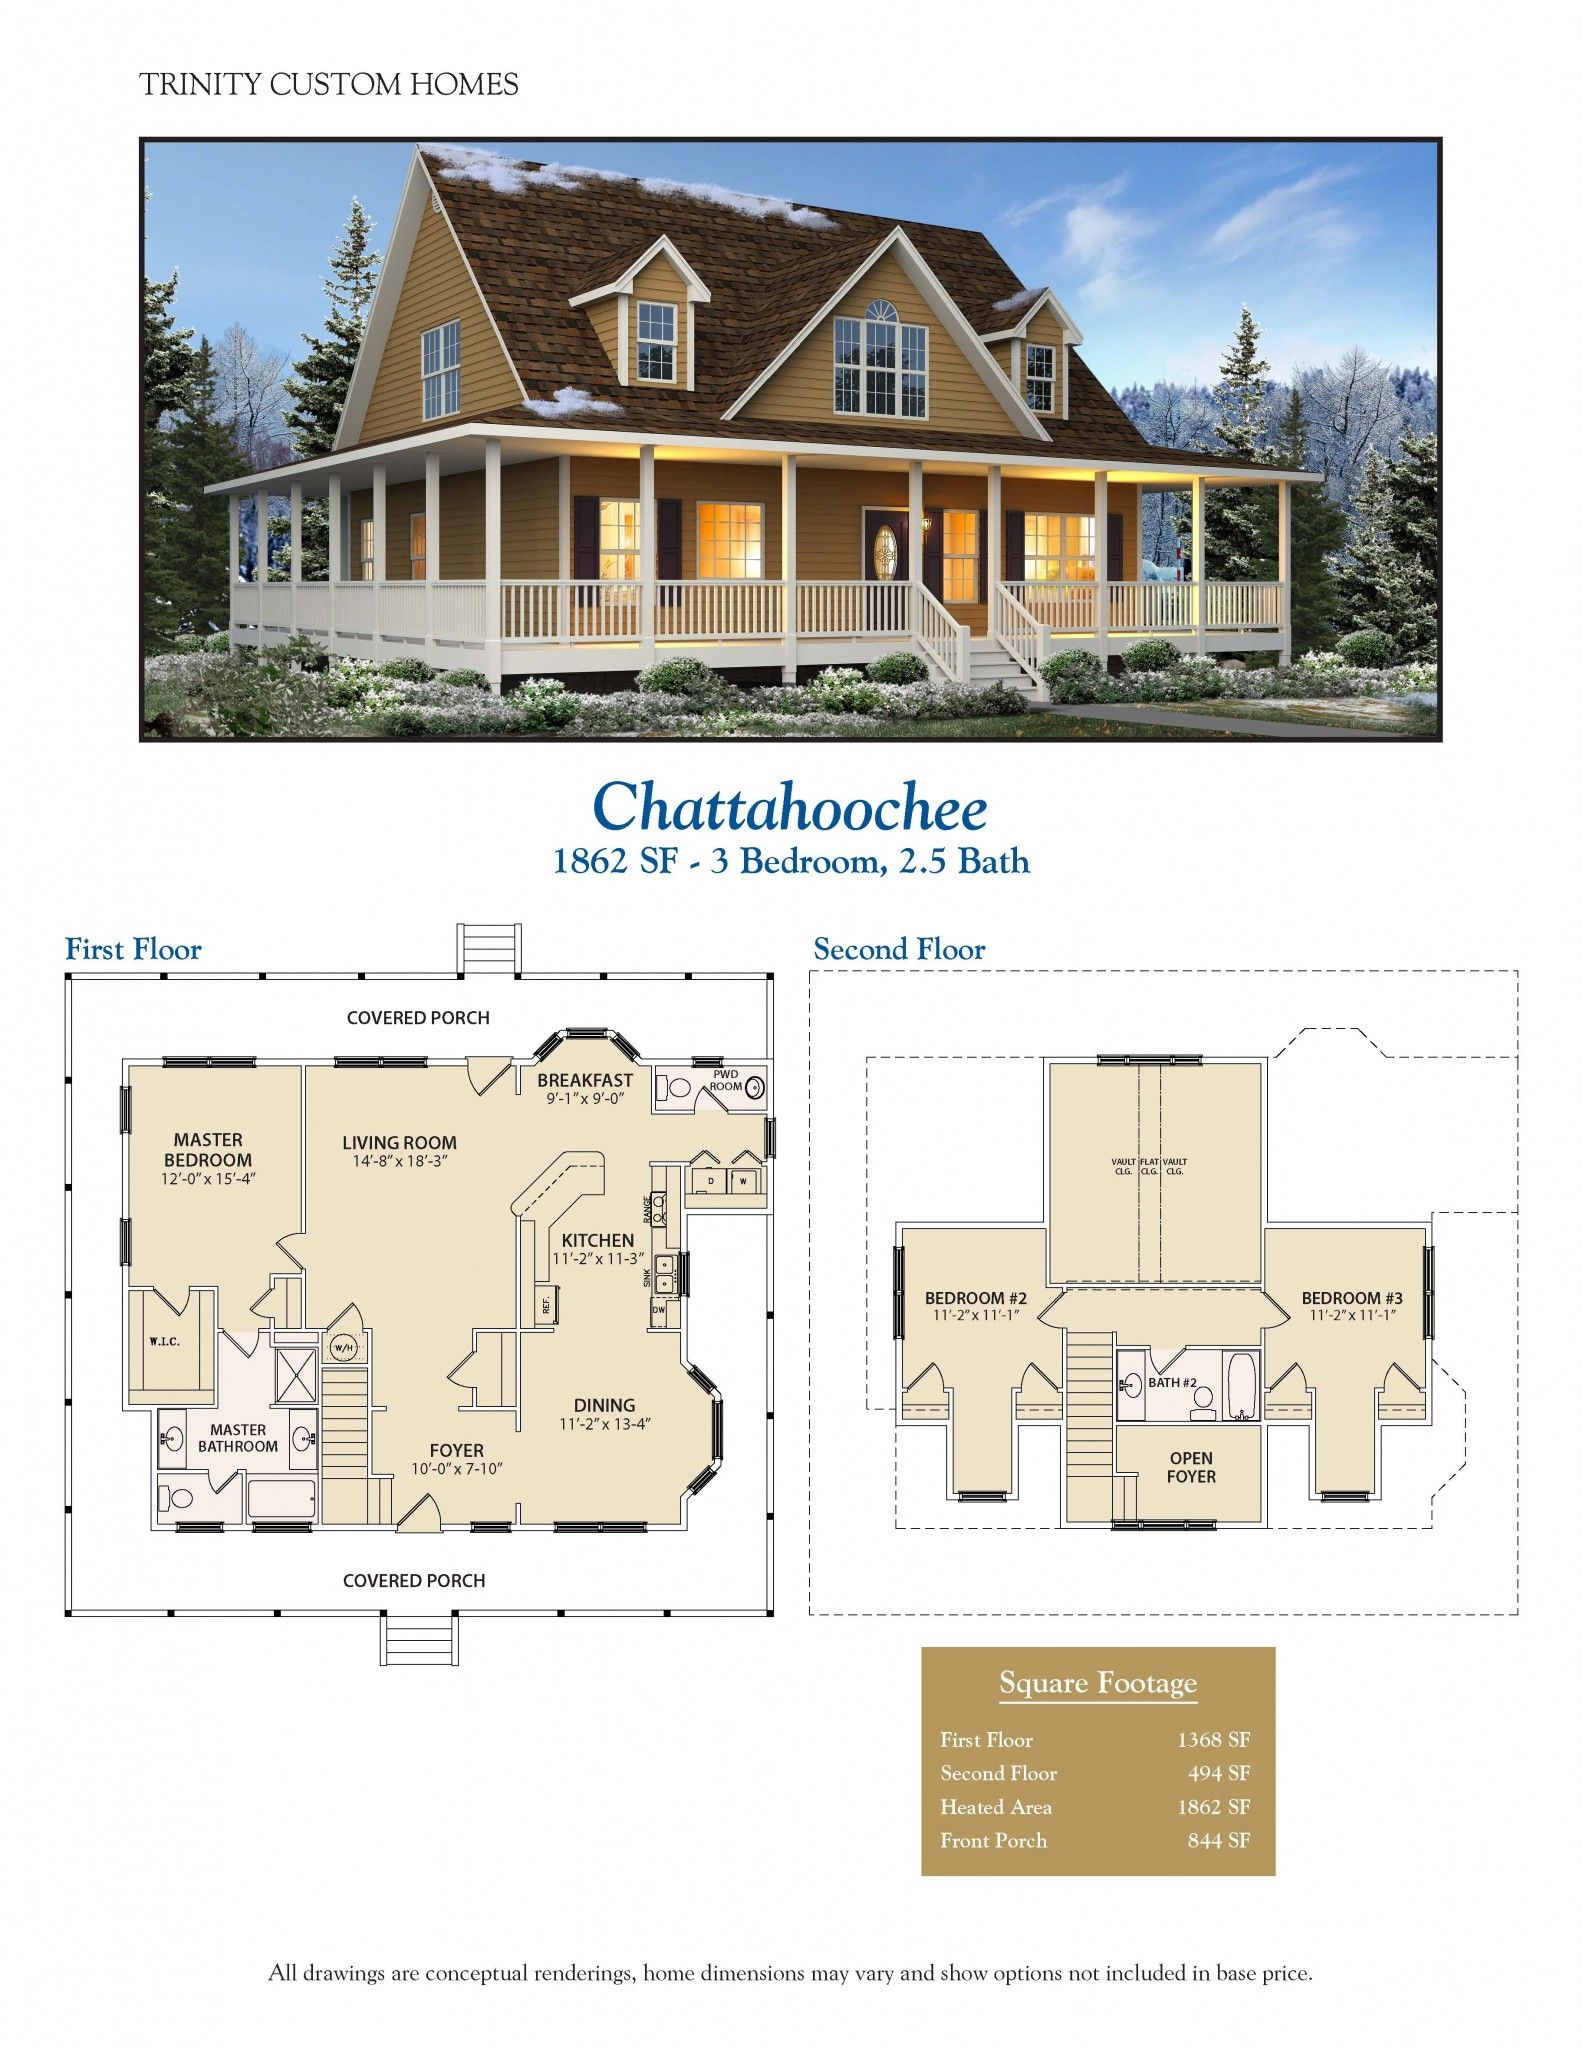 Trinity custom homes montgomery al home review for Custom building plans